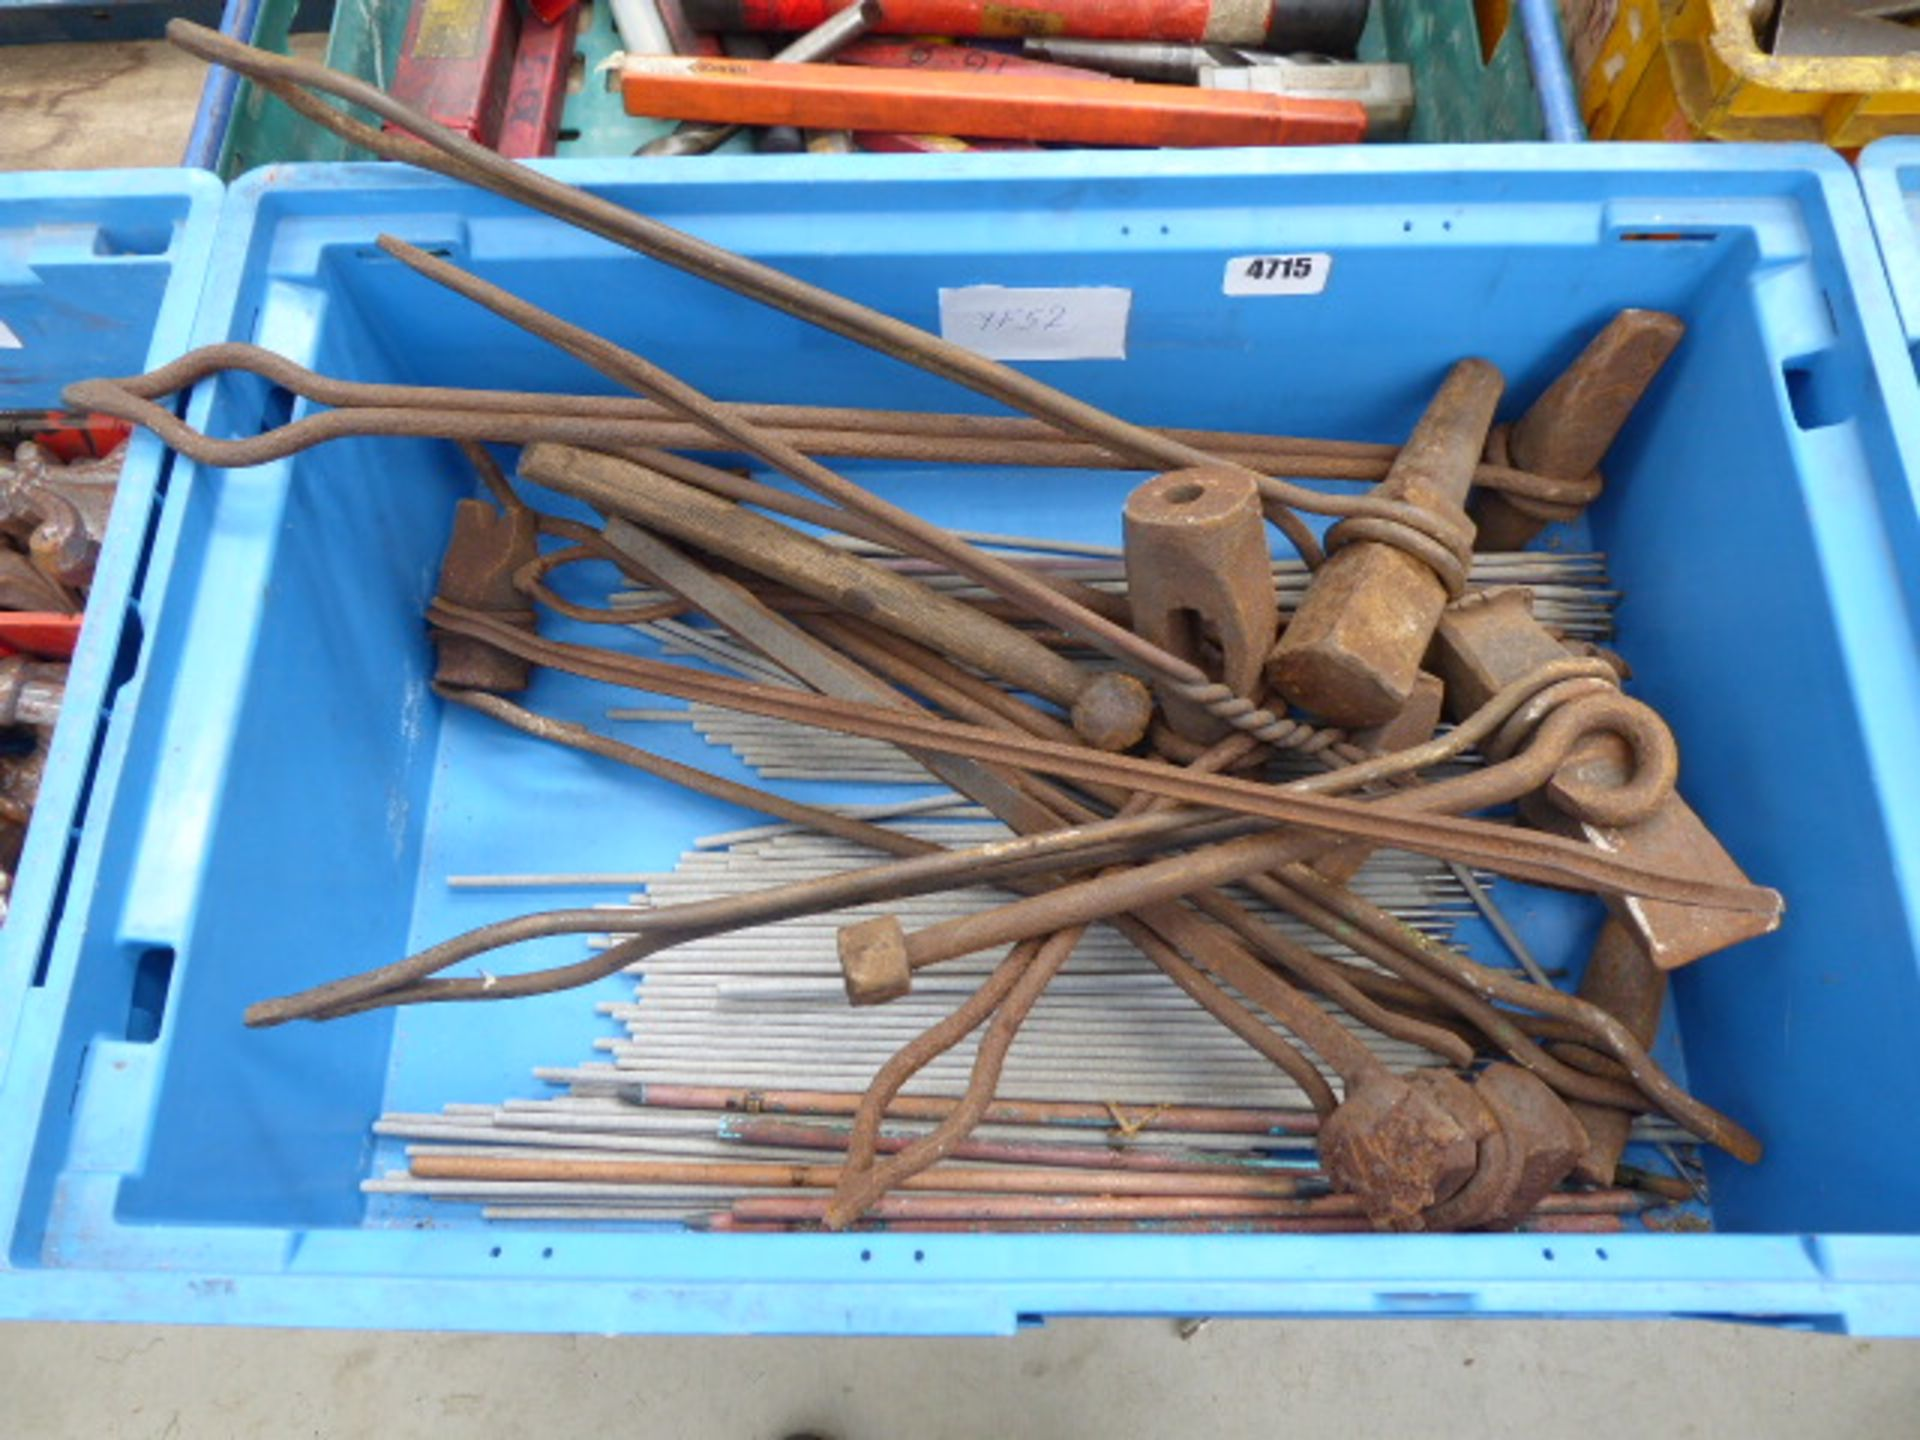 Lot 4715 - Box containing a quantity of welding rods and welding tools